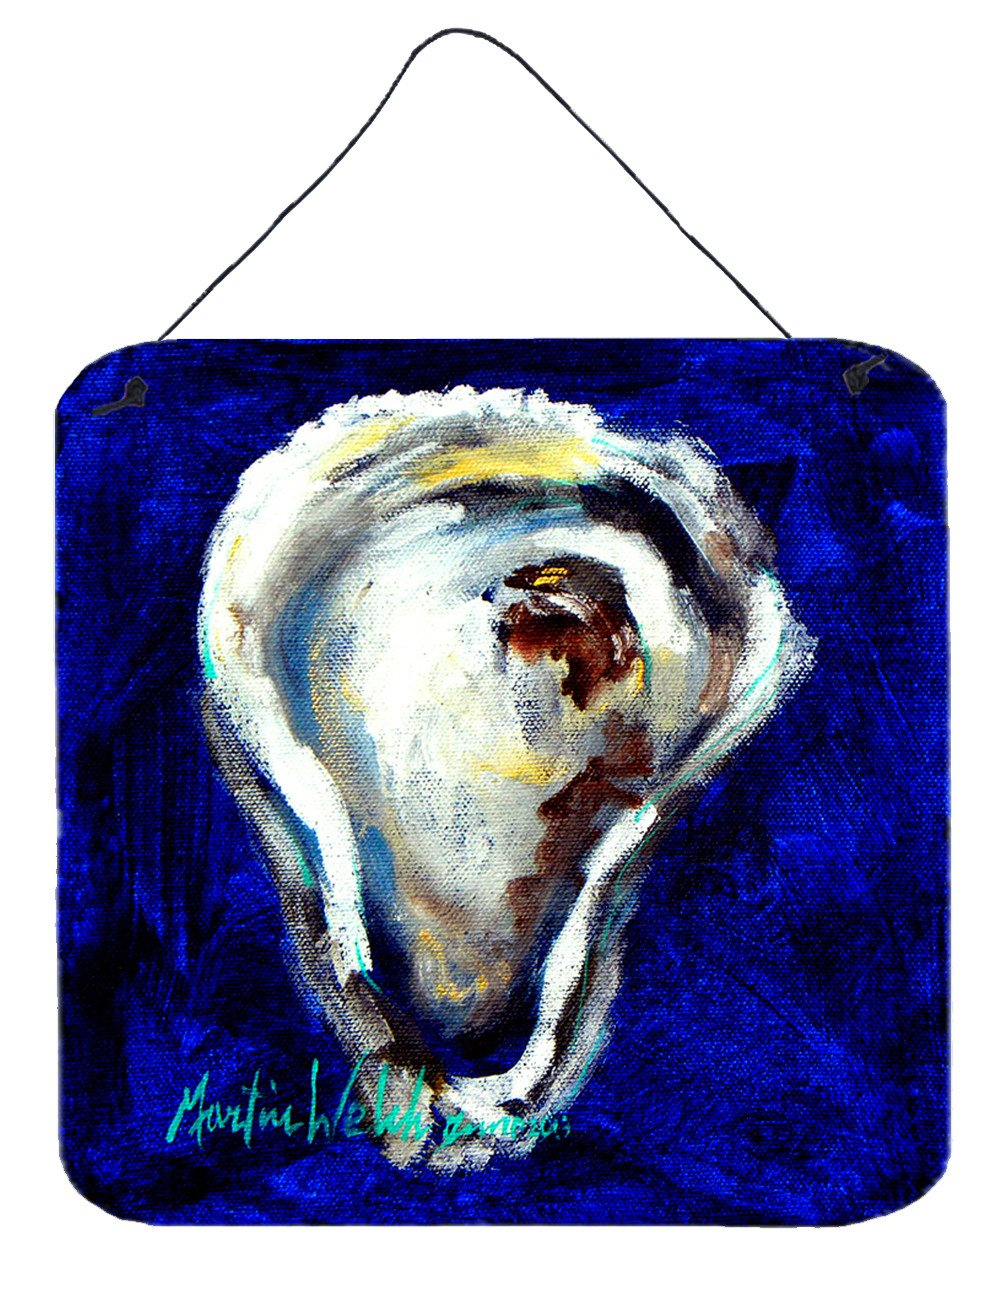 Buy this Oyster One Shell Aluminium Metal Wall or Door Hanging Prints